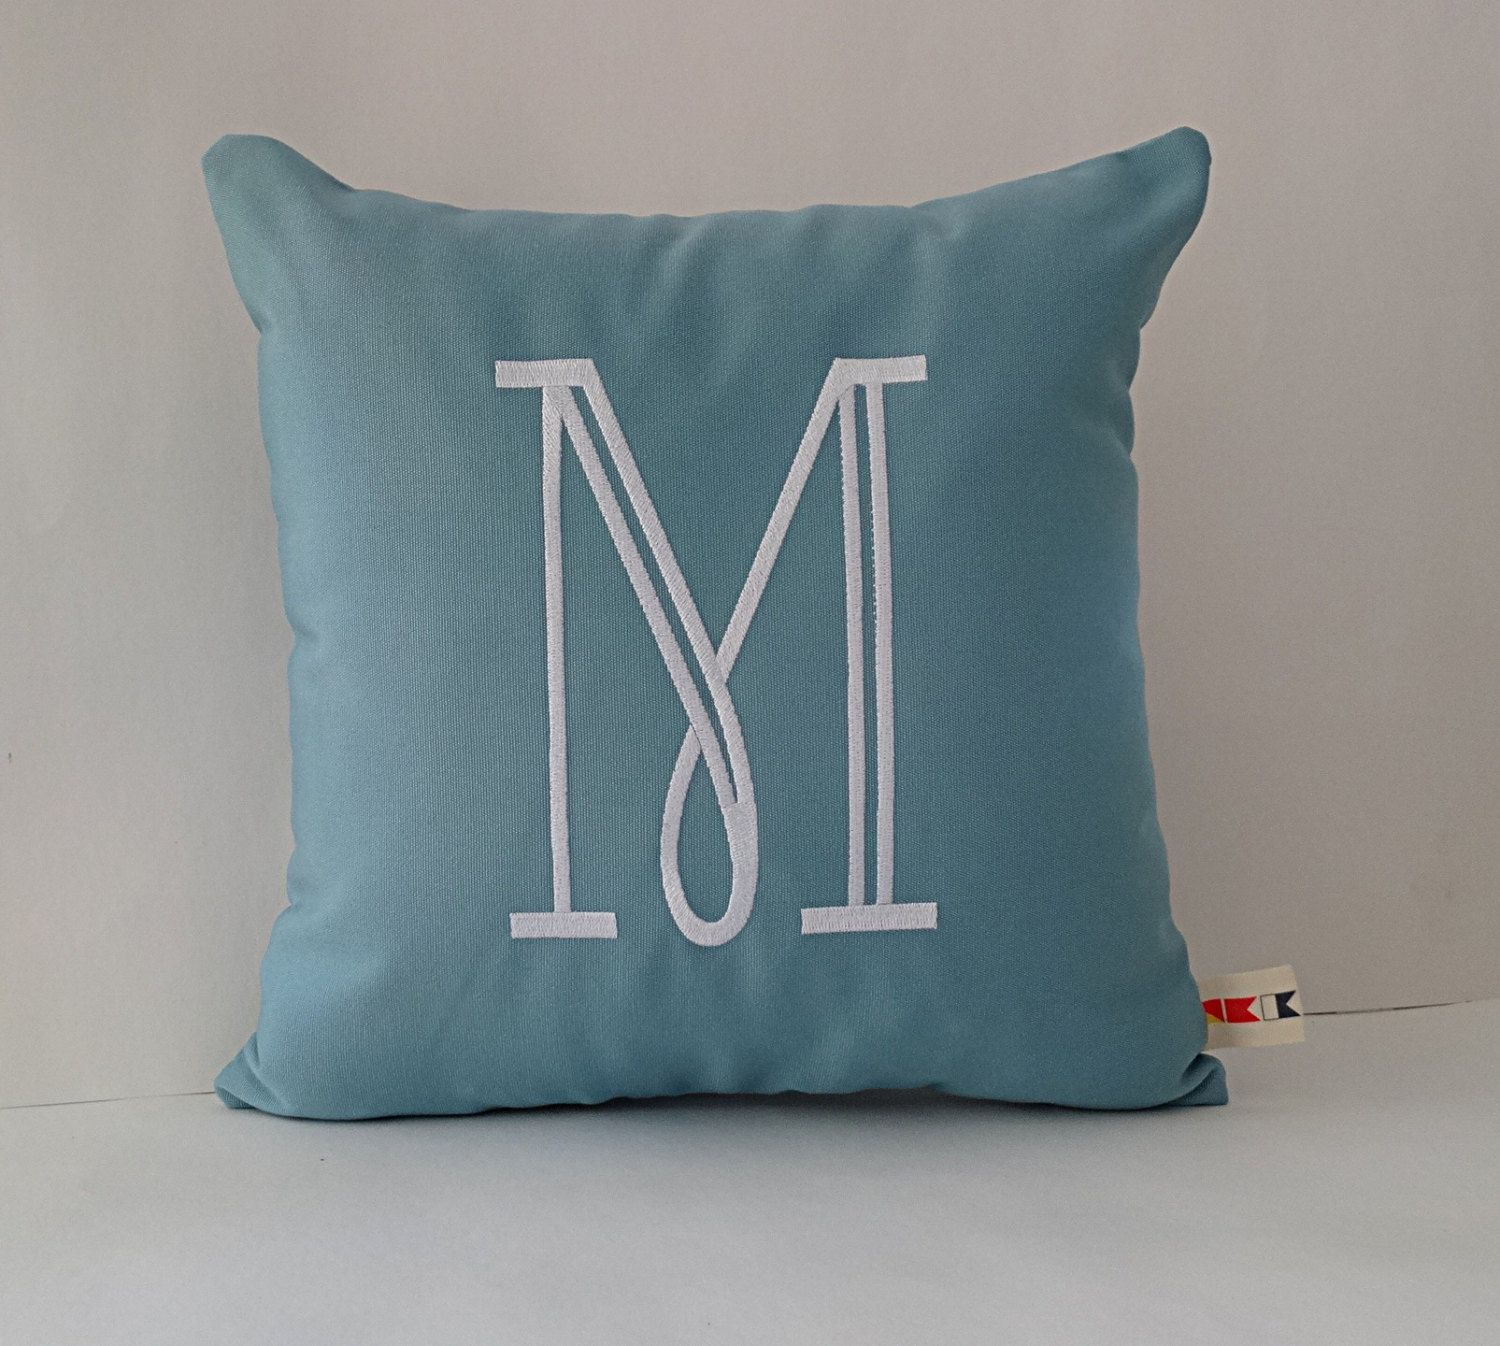 Initial Pillow Covers Inspiration Sunbrella Inital Indooroutdoor Pillow Cover Initial Pillow Cover Design Ideas